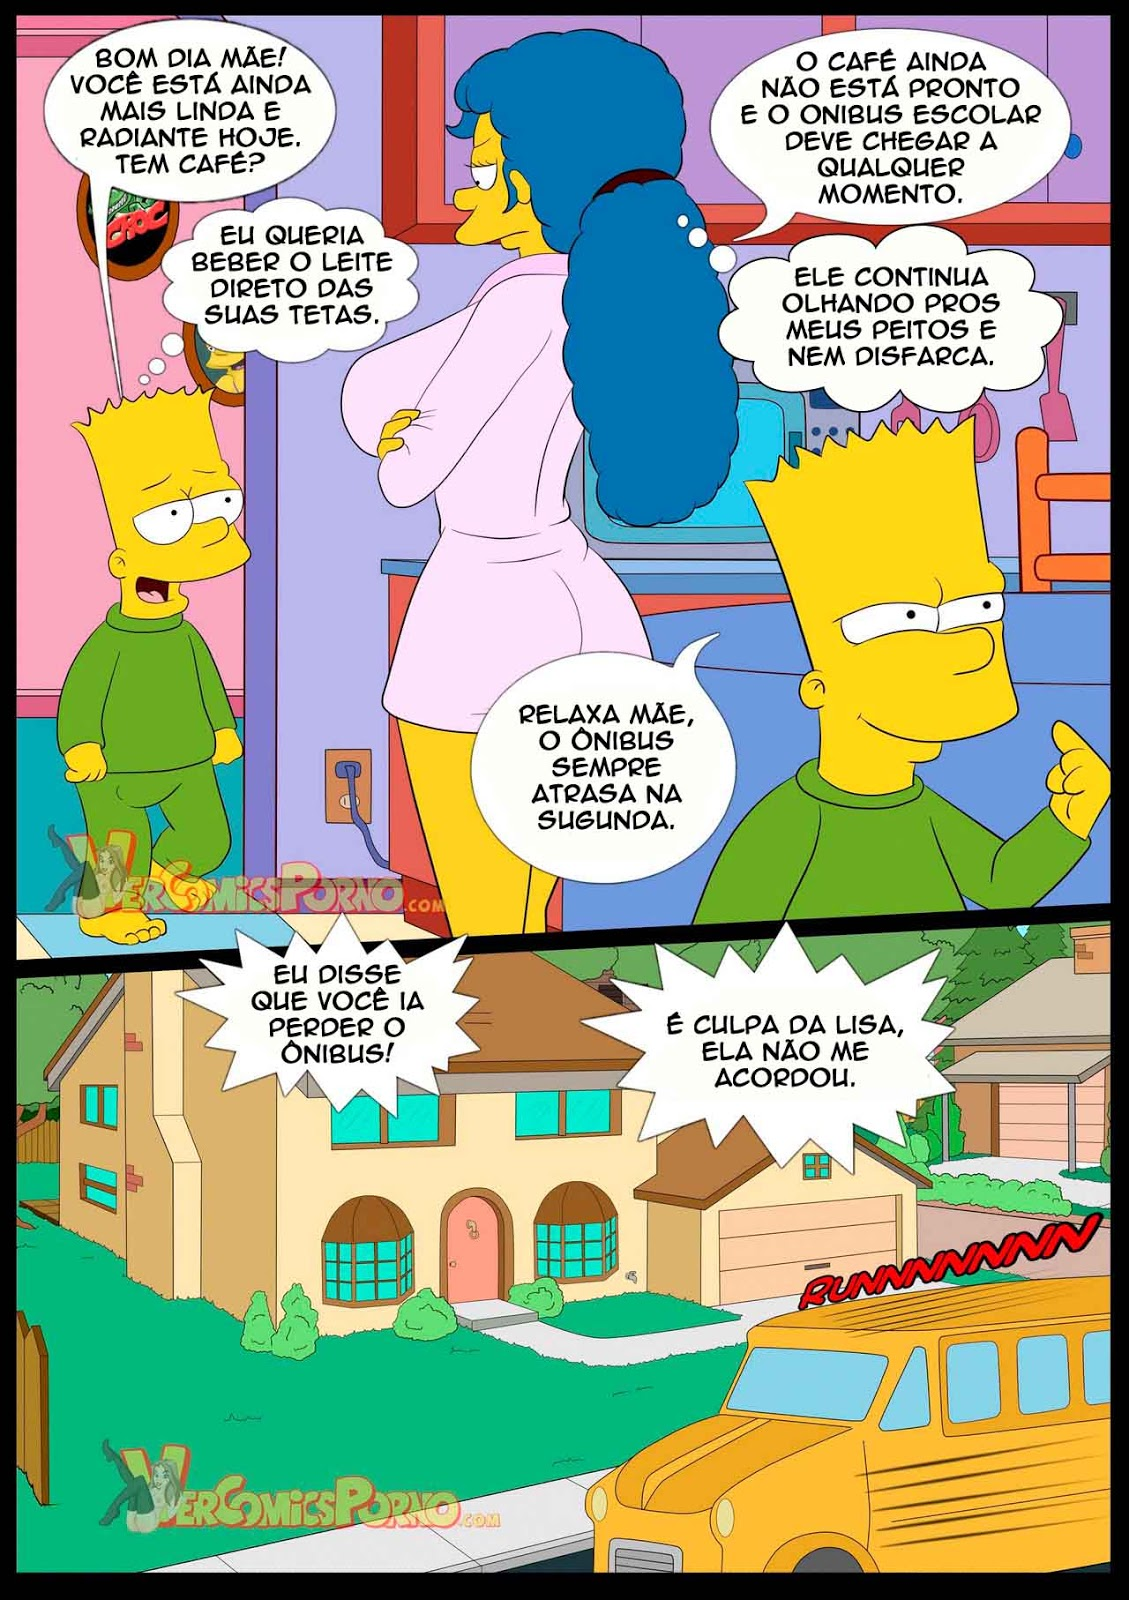 You hentai brasil simpsons com